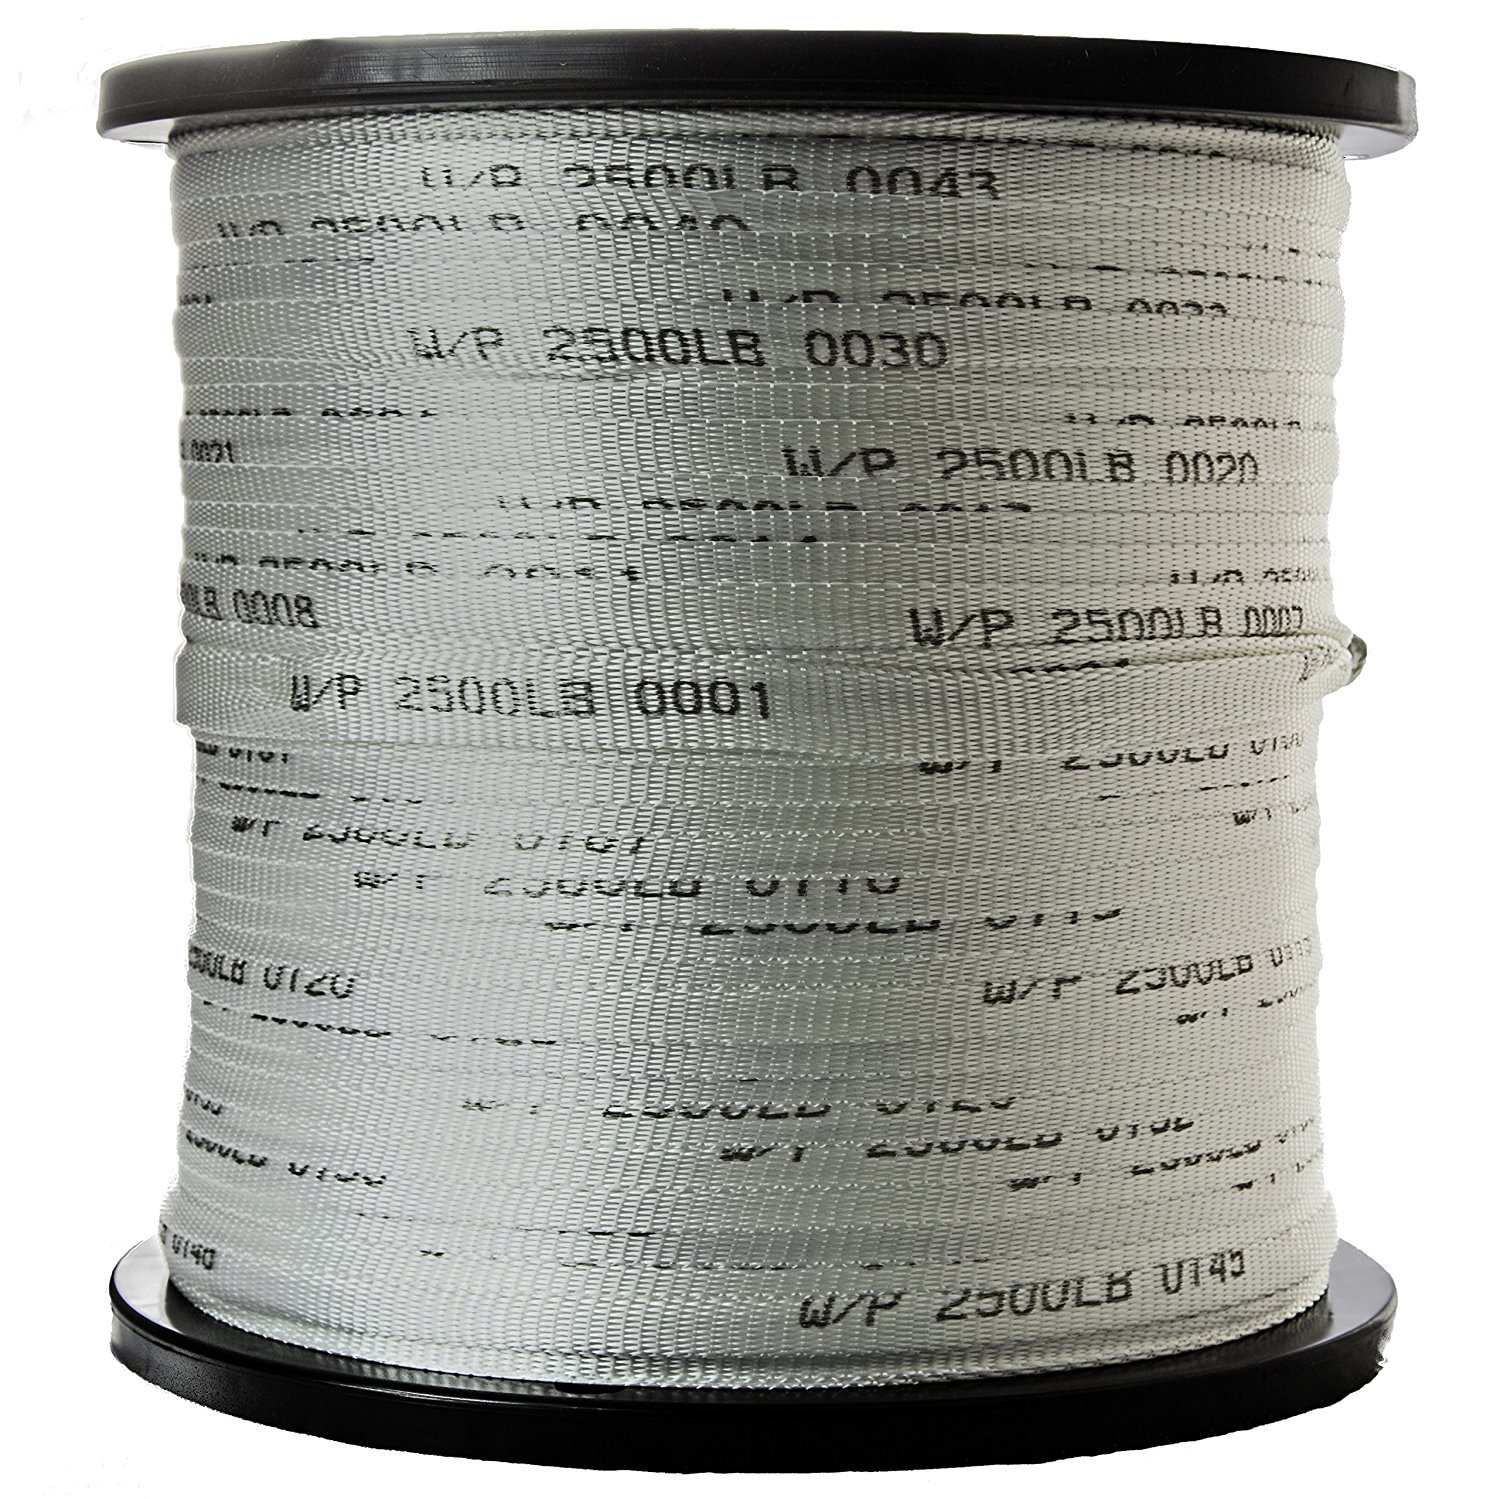 USA Made 2500 Lb 3/4'' Pull Tape/Mule Webbing - 500 FT (Many Strengths and Lengths Available)